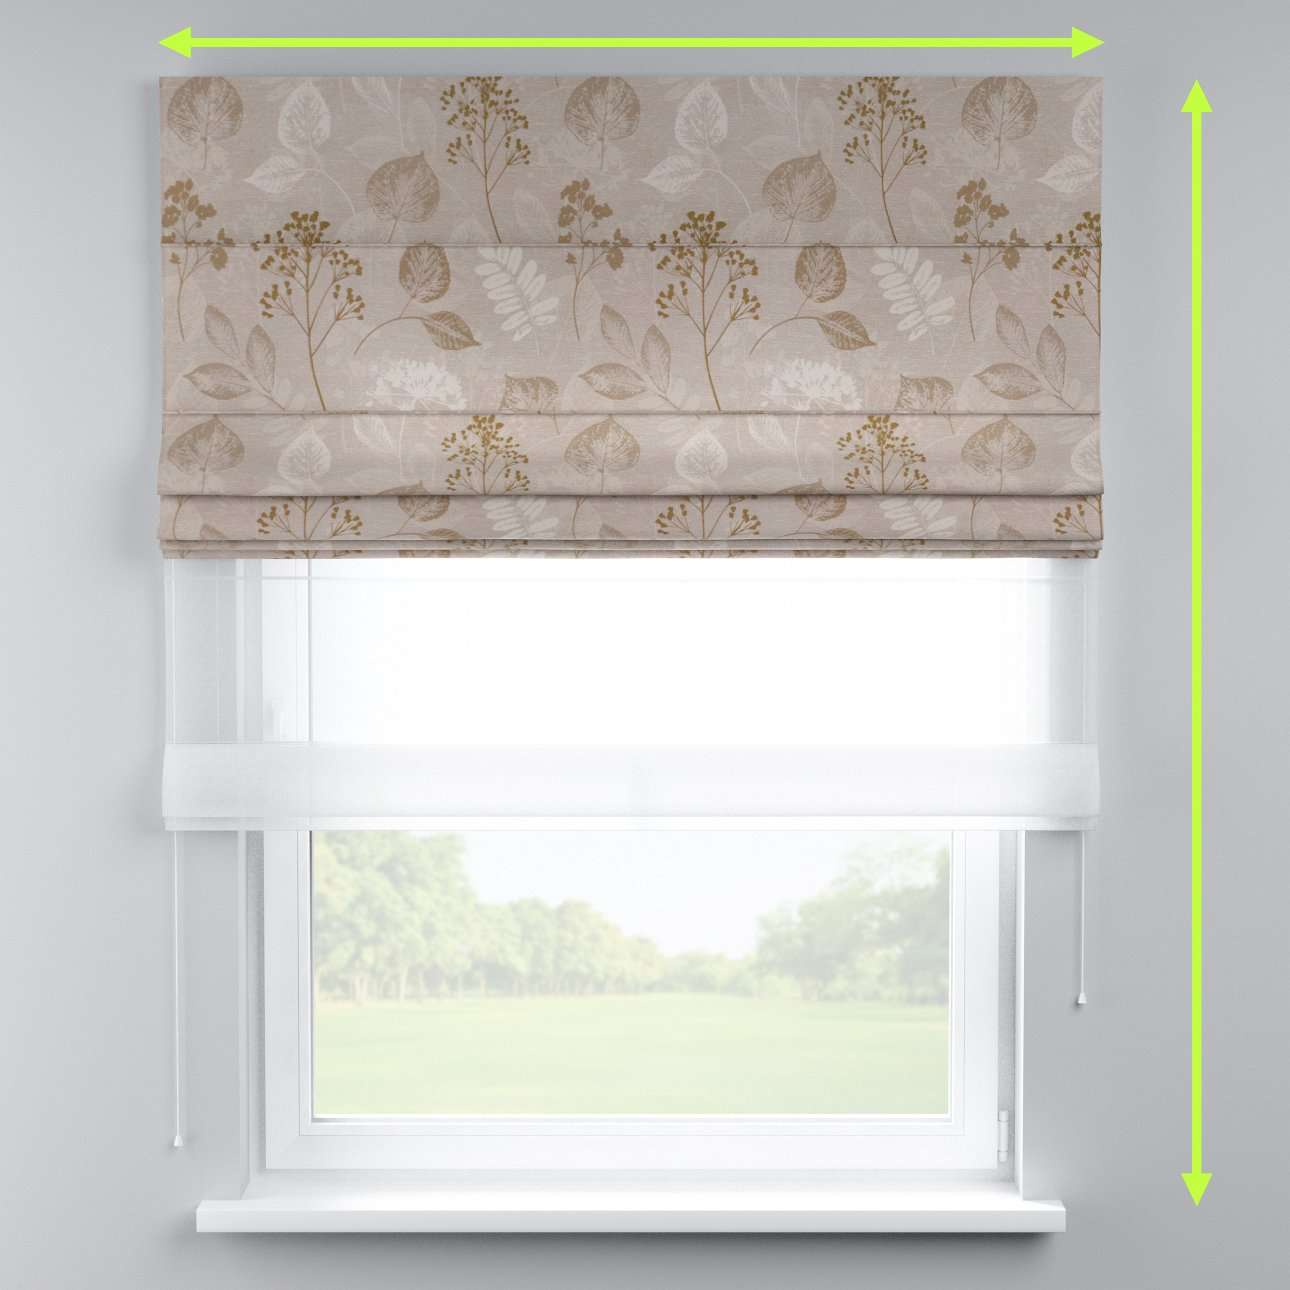 Voile and fabric roman blind (DUO II) in collection Norge, fabric: 140-87